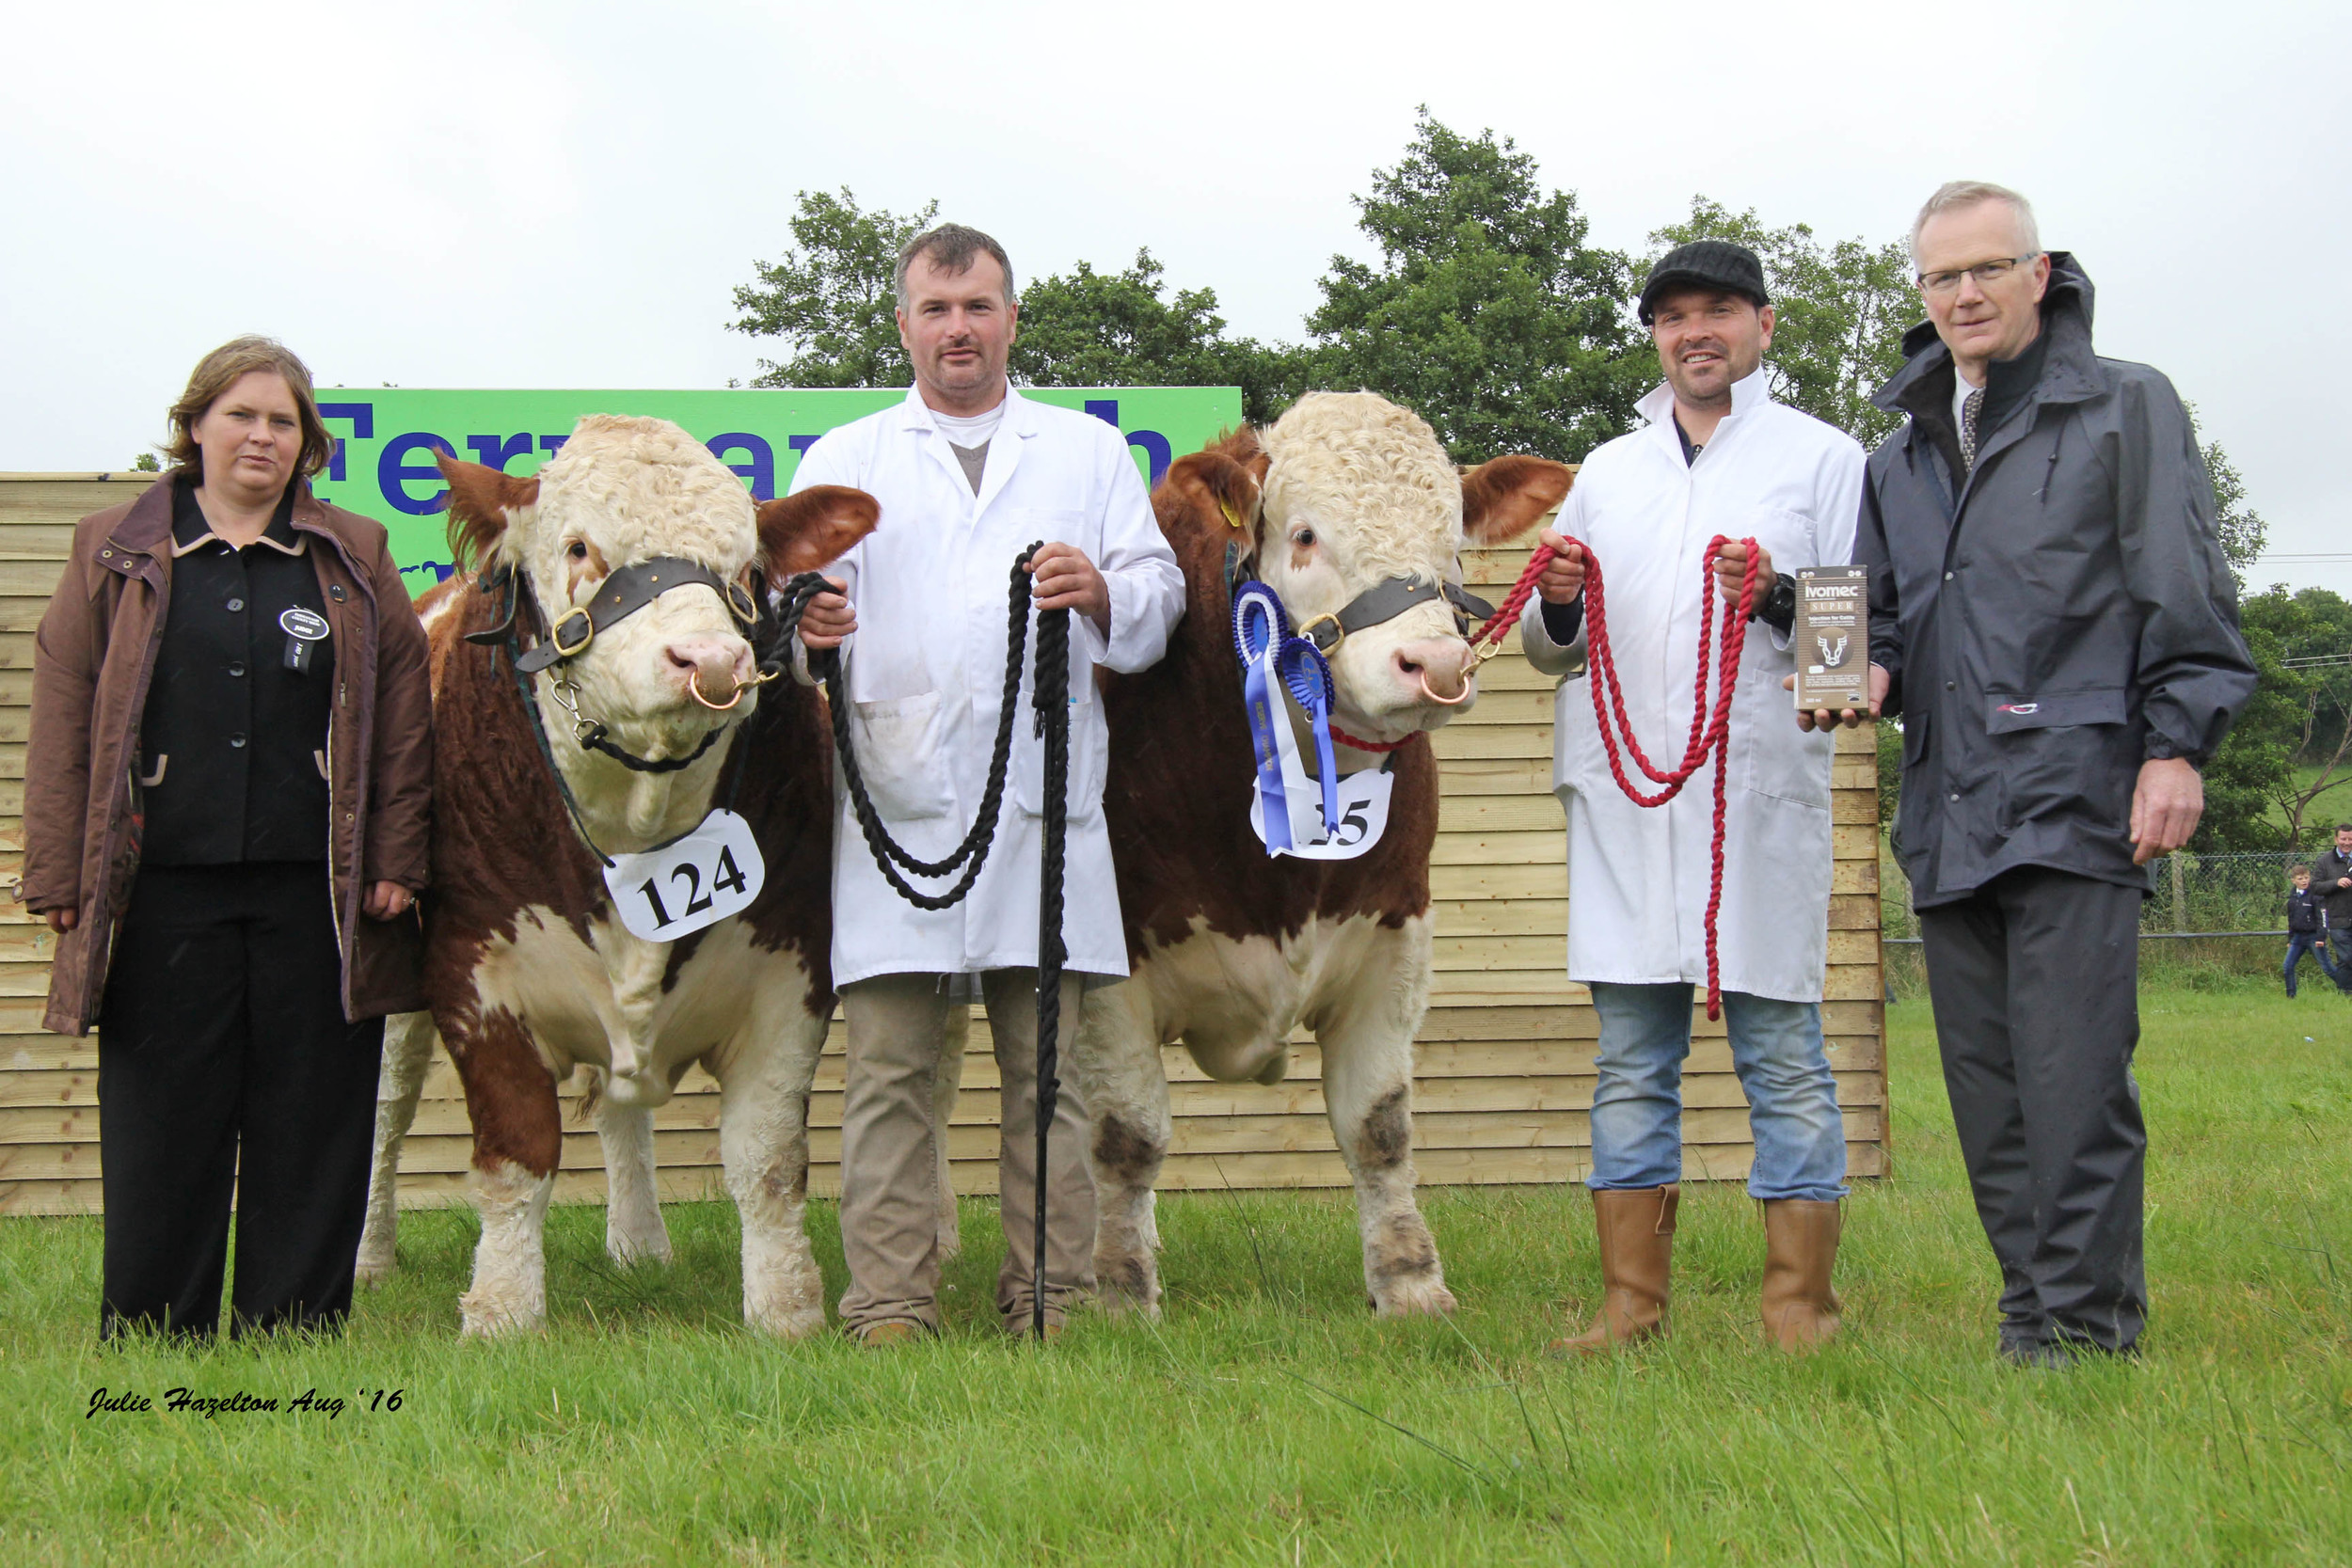 Alan and Neil Wilson, Newry, exhibited the reserve Ivomec Super Simmental Pair of the Year winners Ballinlare Farm Goldenballs and Ballinlare Farm Galaxy. They were congratulated by judge Bridget Borlase, Hertfordshire, judge; and sponsor Philip Clarke, Merial Animal Health.